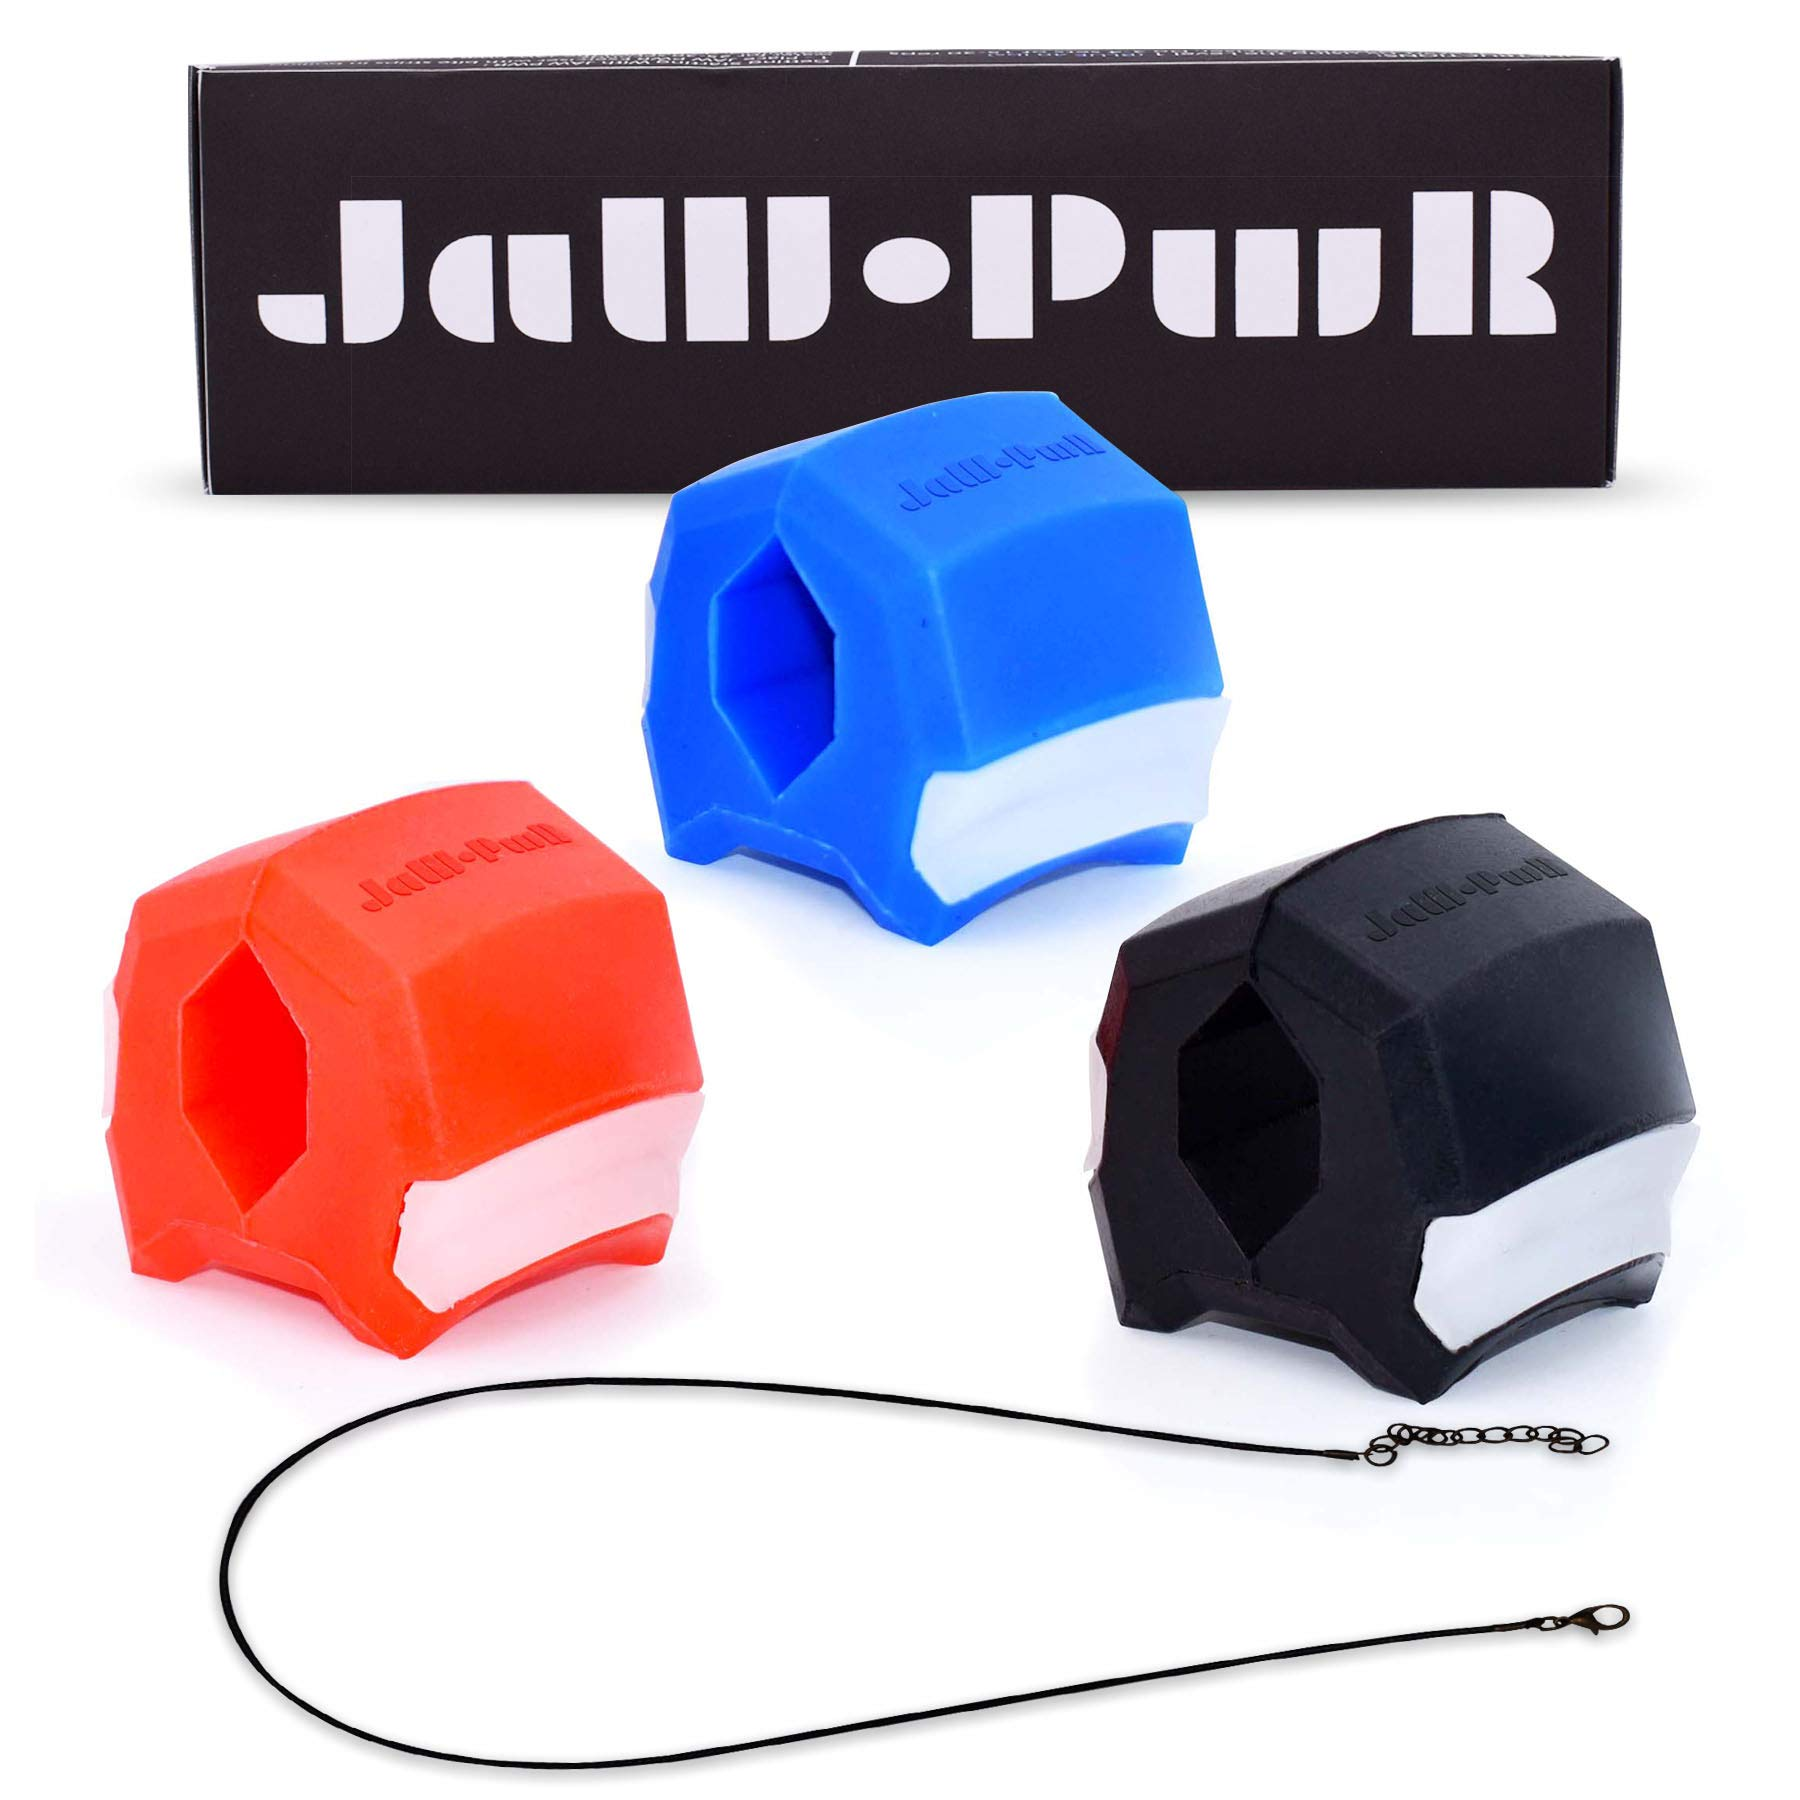 JAW.PWR Jawline, Face and Neck Exerciser for Men and Women (3 Pack - 40, 50, 60 Lbs Resistance), Define your Jawline, Slim and Tone your Face and Neck Muscles to Look Younger - Red, Blue, Black